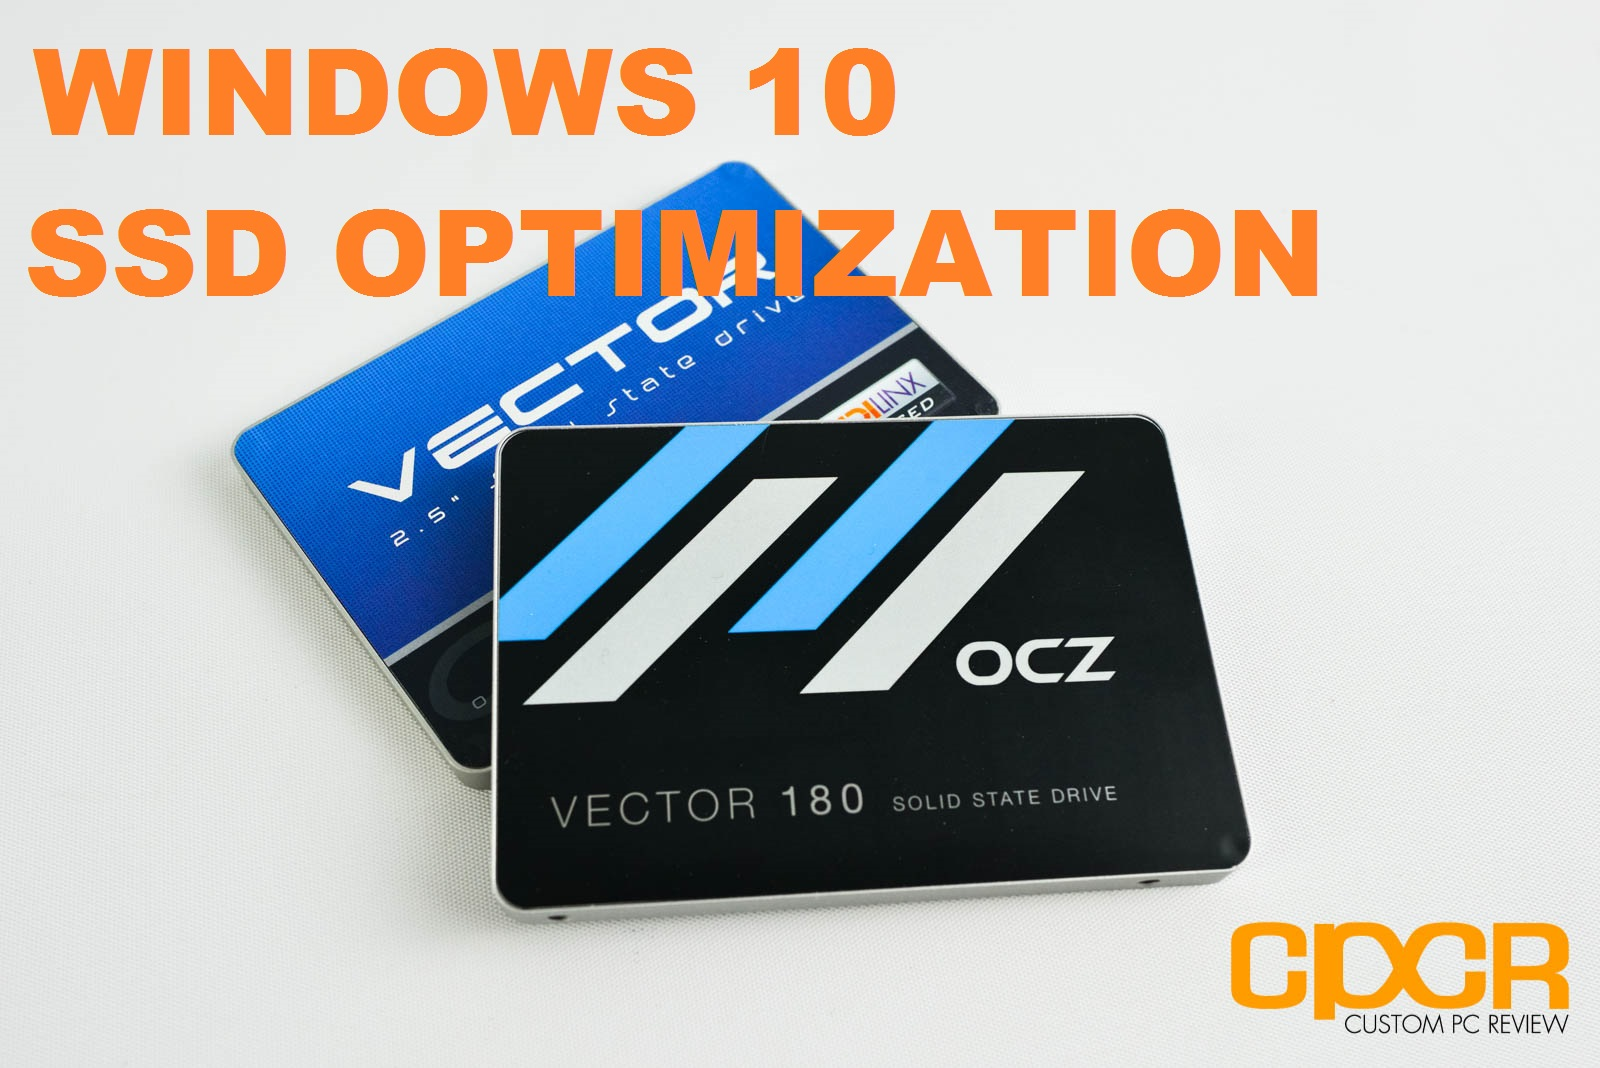 SSD Optimization Guide for Windows 10 | Custom PC Review